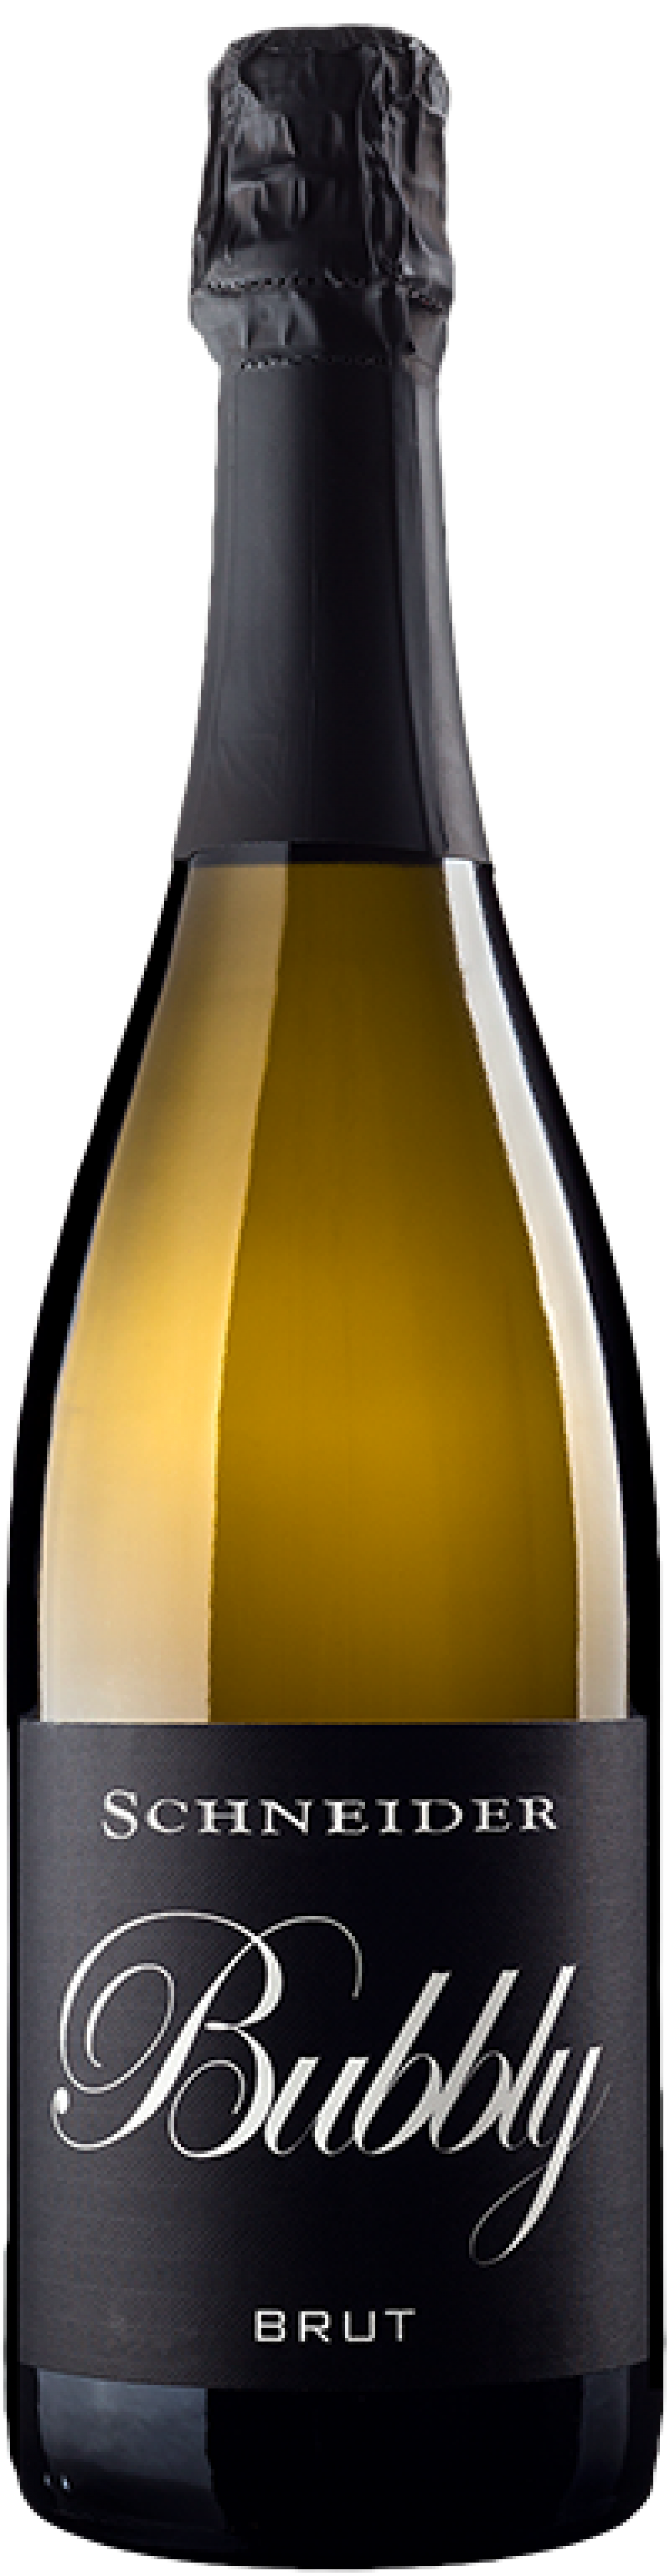 files/images/wines/Germany/markus-schneider-pfalz/bubbly-brut 2014.png